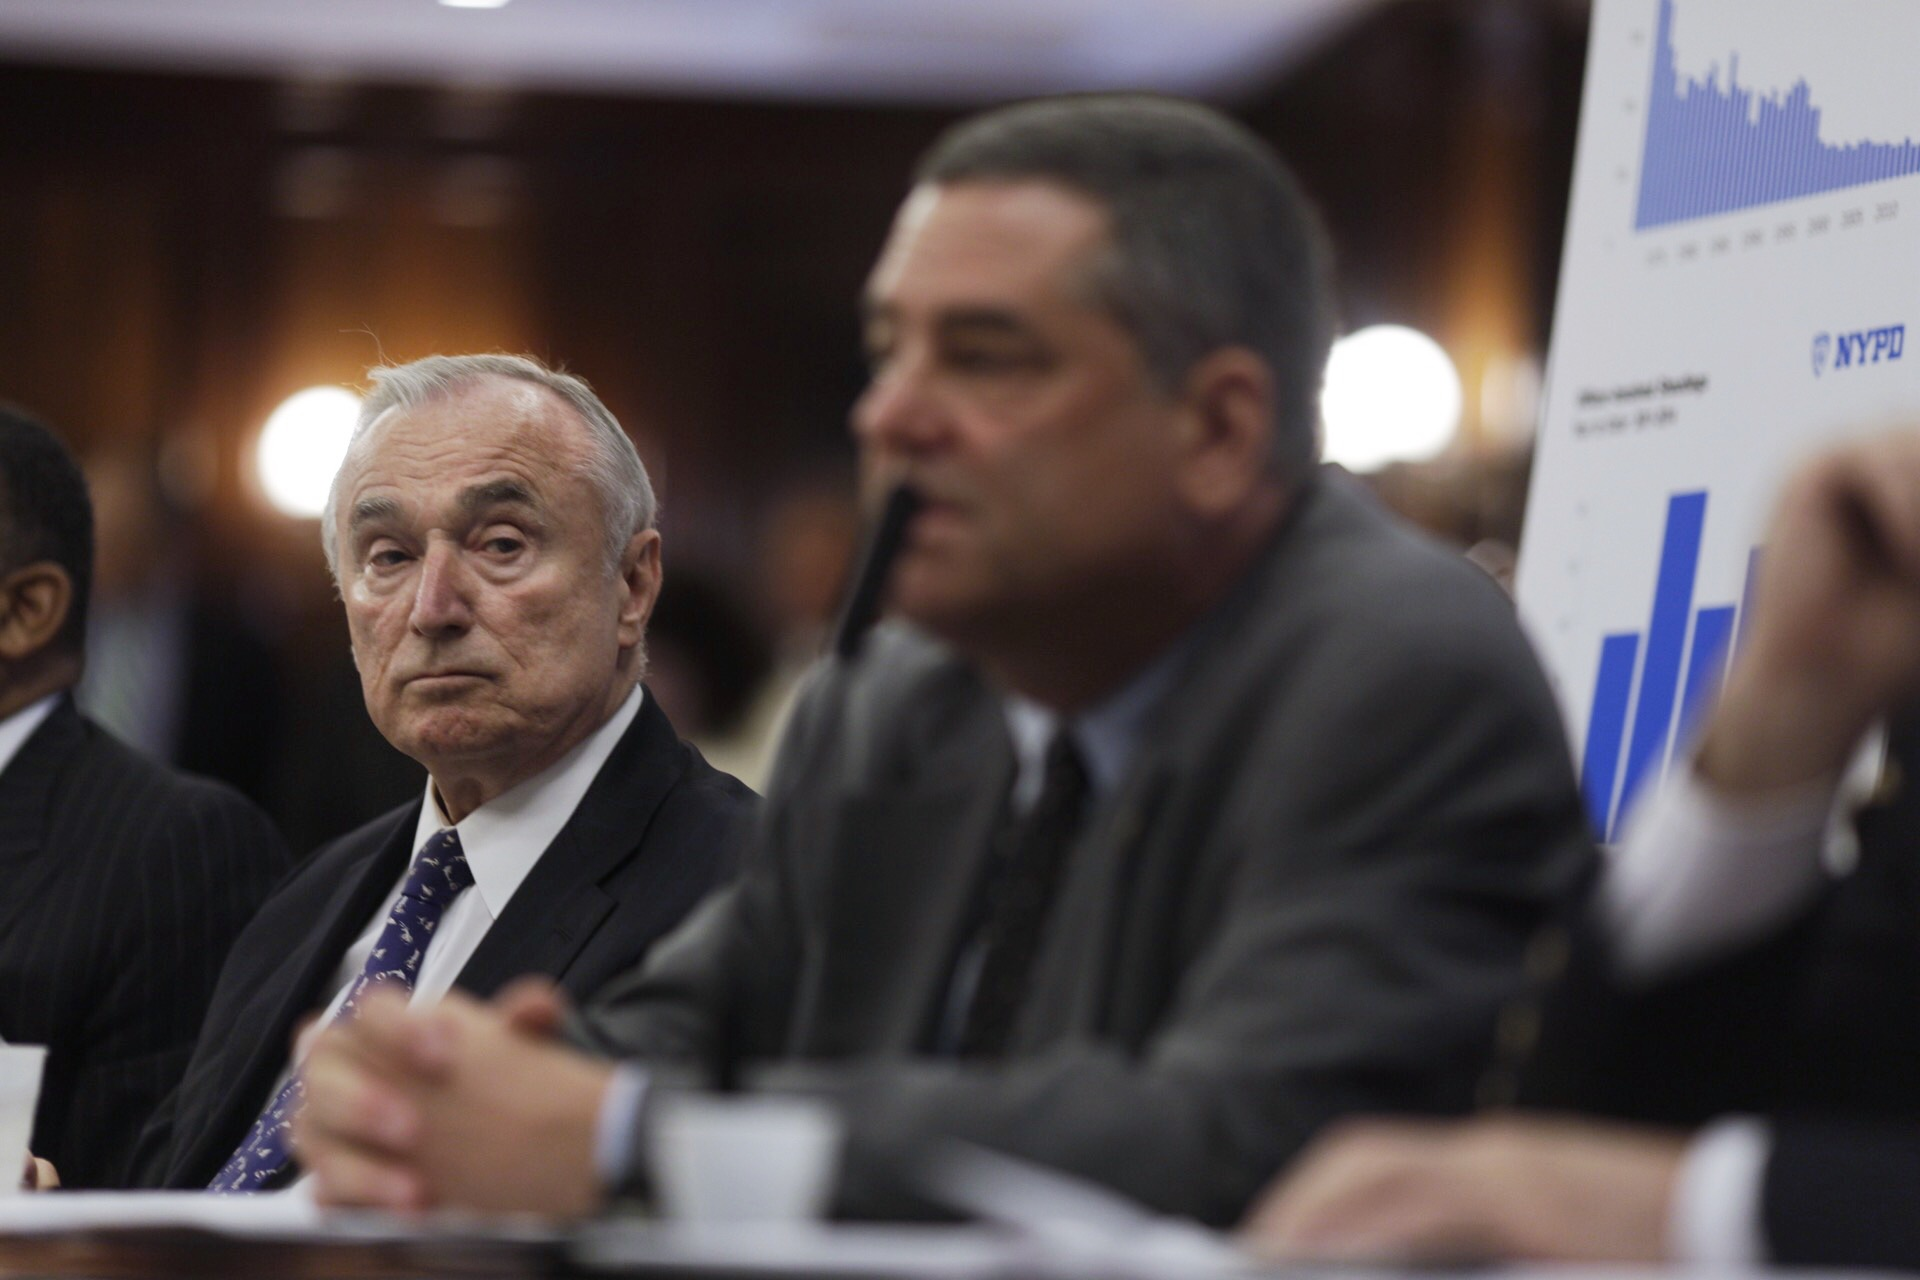 Police Commissioner Bill Bratton testifying to the City Council today. (Photo: William Alatriste/New York City Council)